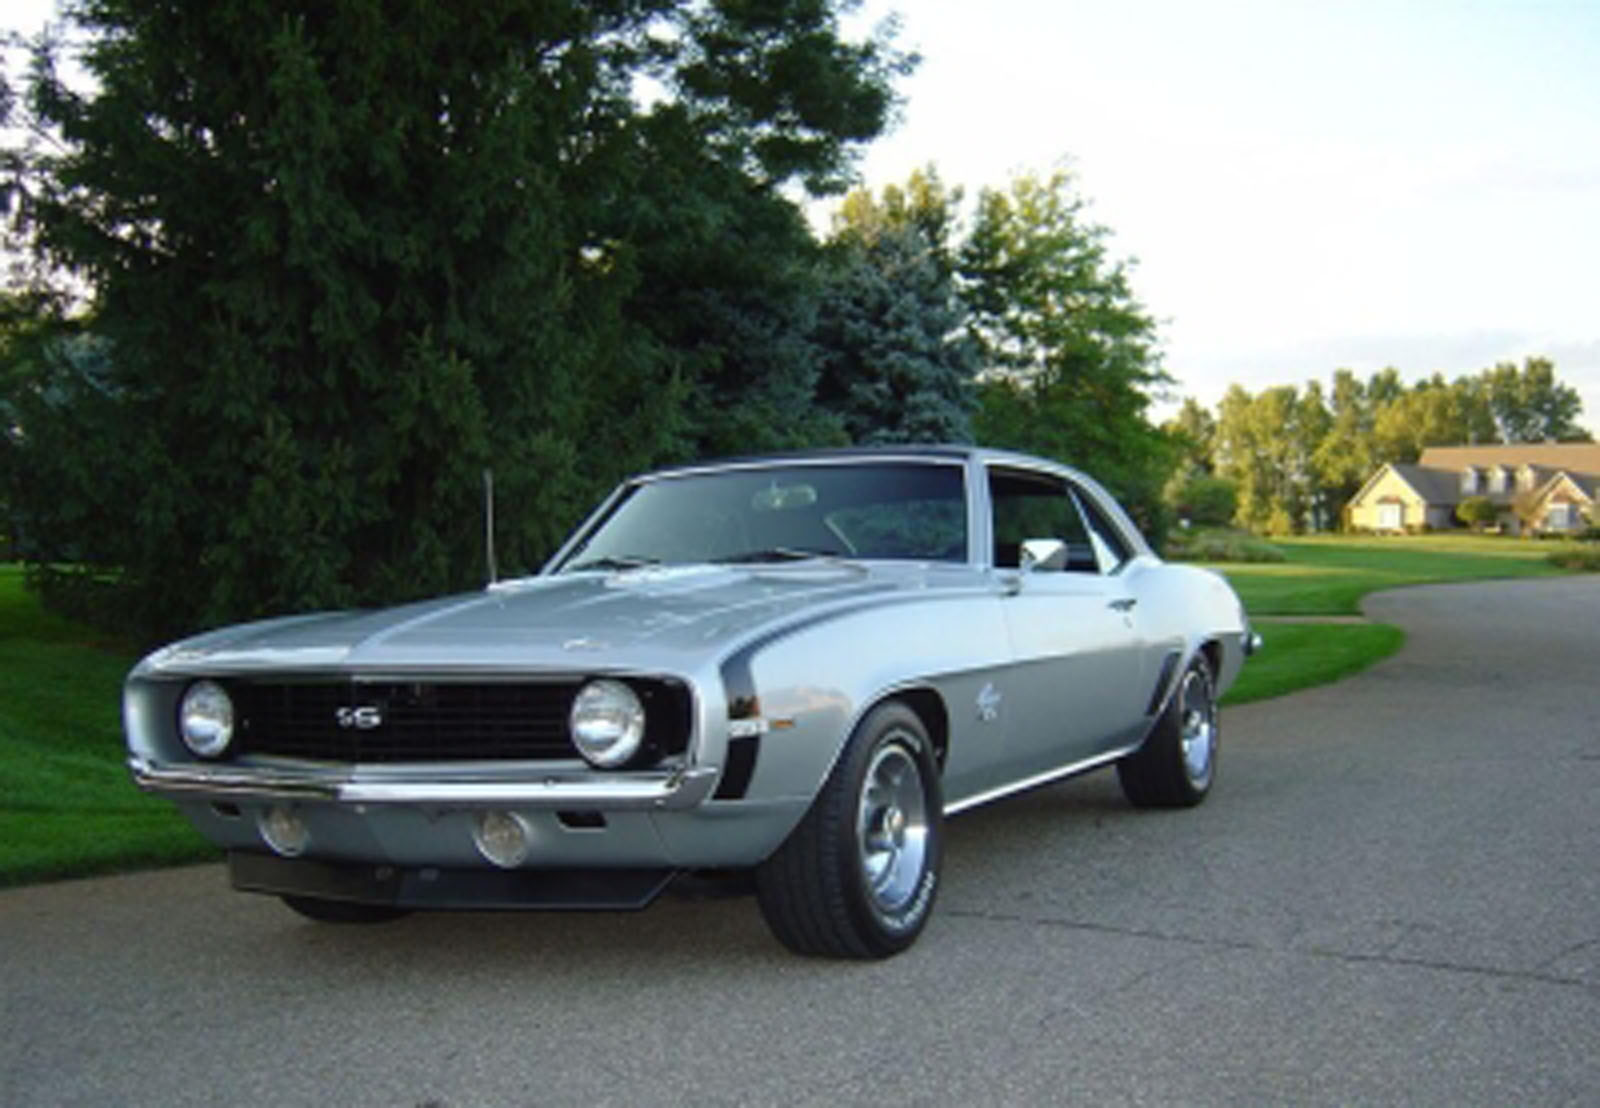 1969 chevrolet camaro ss for sale united states military acade new york. Black Bedroom Furniture Sets. Home Design Ideas